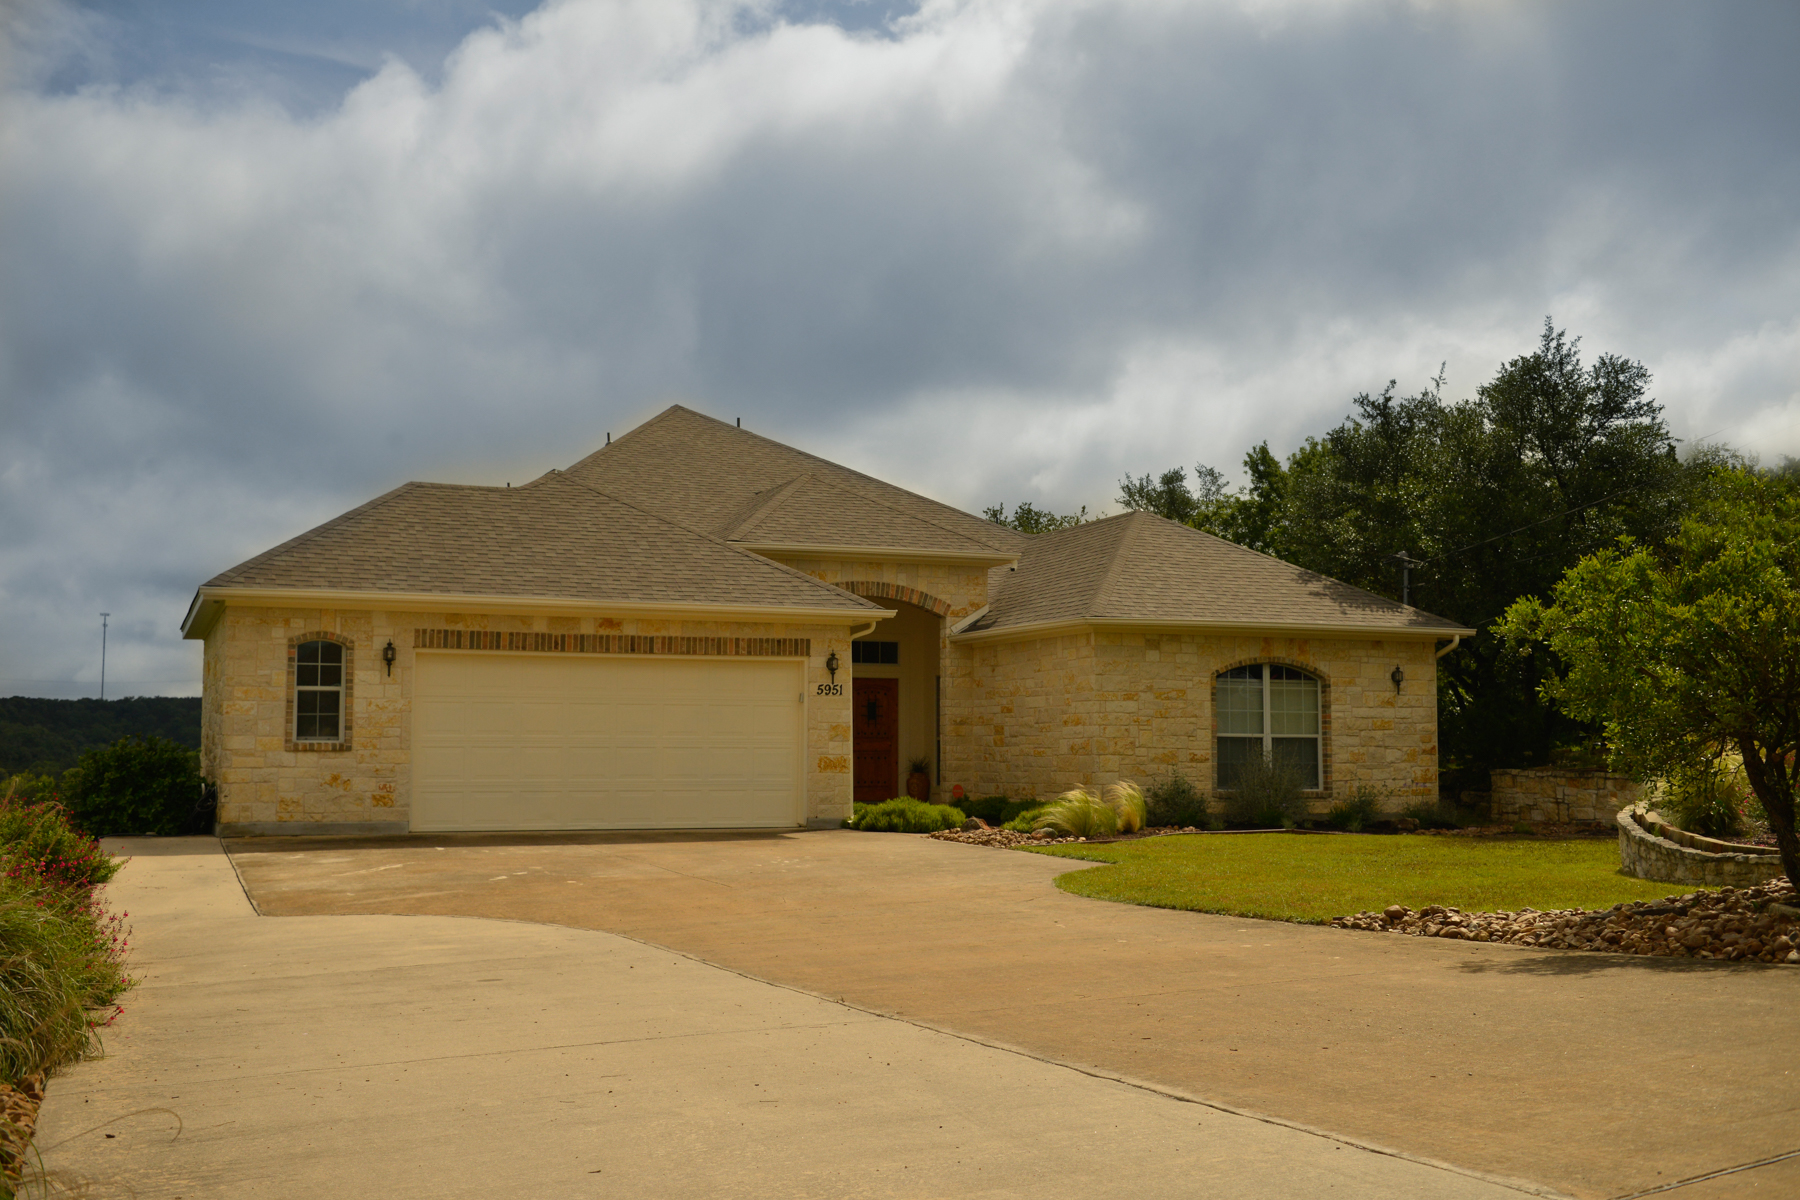 Casa Unifamiliar por un Venta en Country Living in Rim Rock Ranch 5951 Temerity Way Bulverde, Texas 78163 Estados Unidos